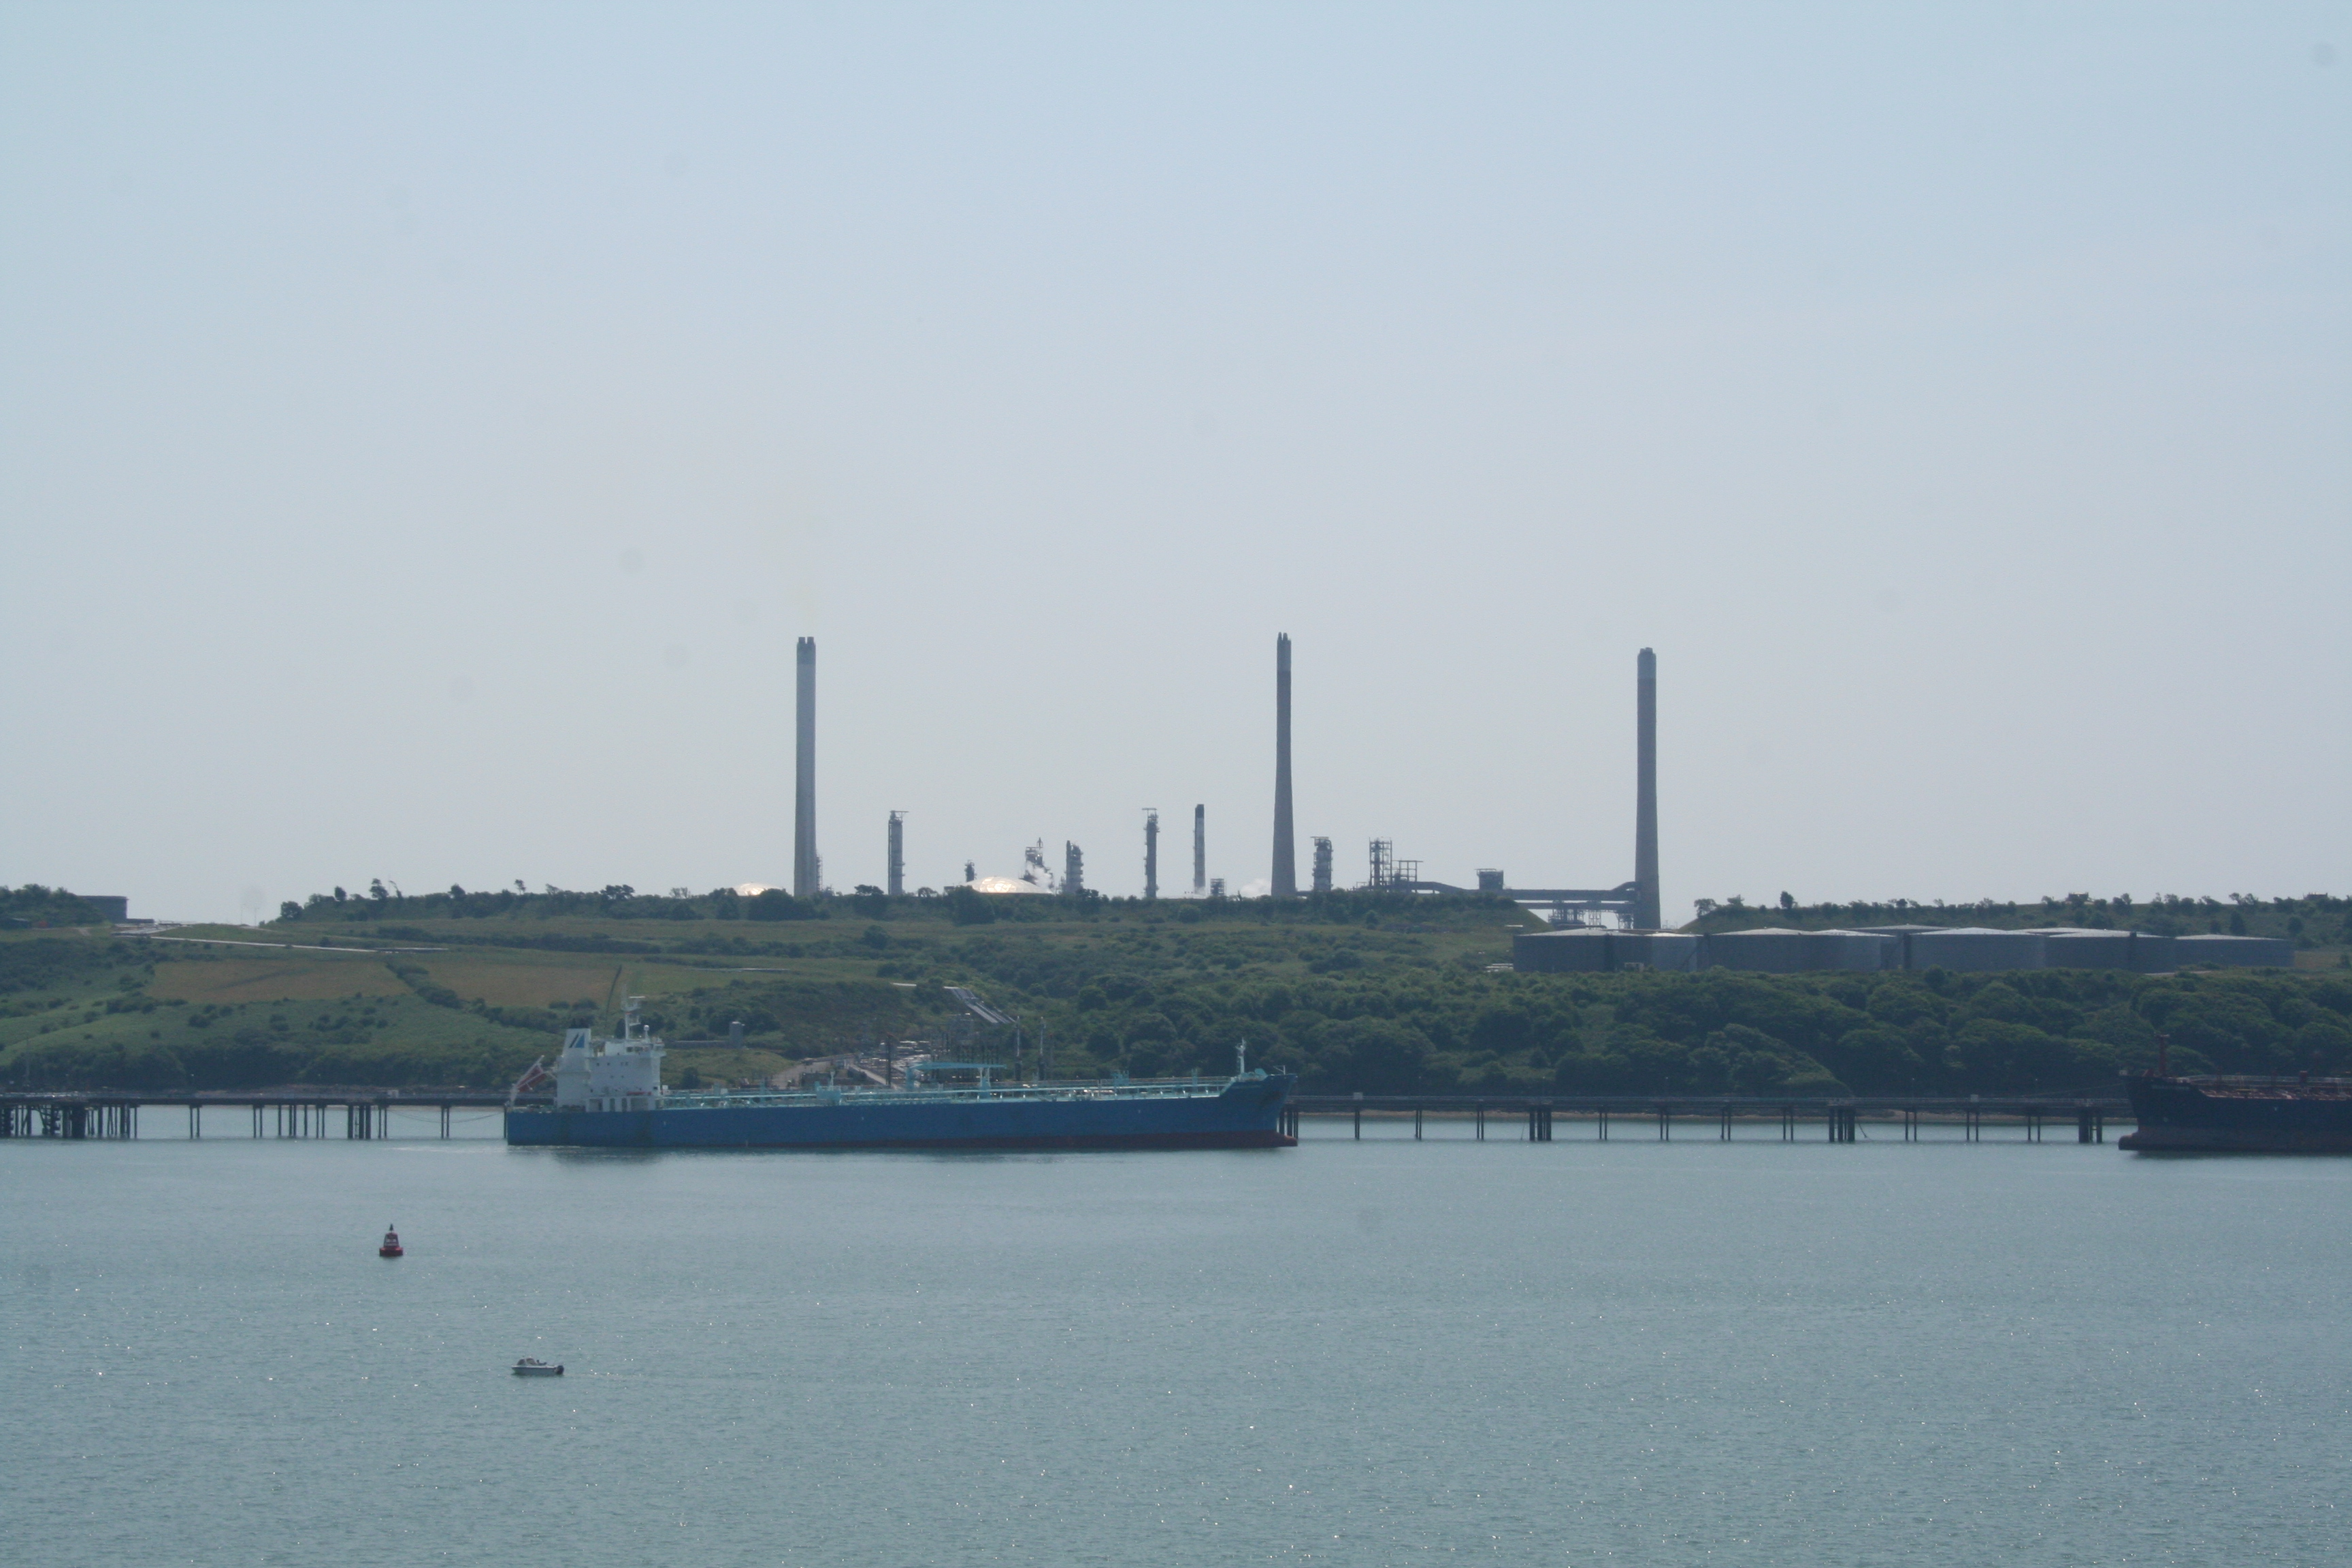 Today, it is the UK's biggest energy port